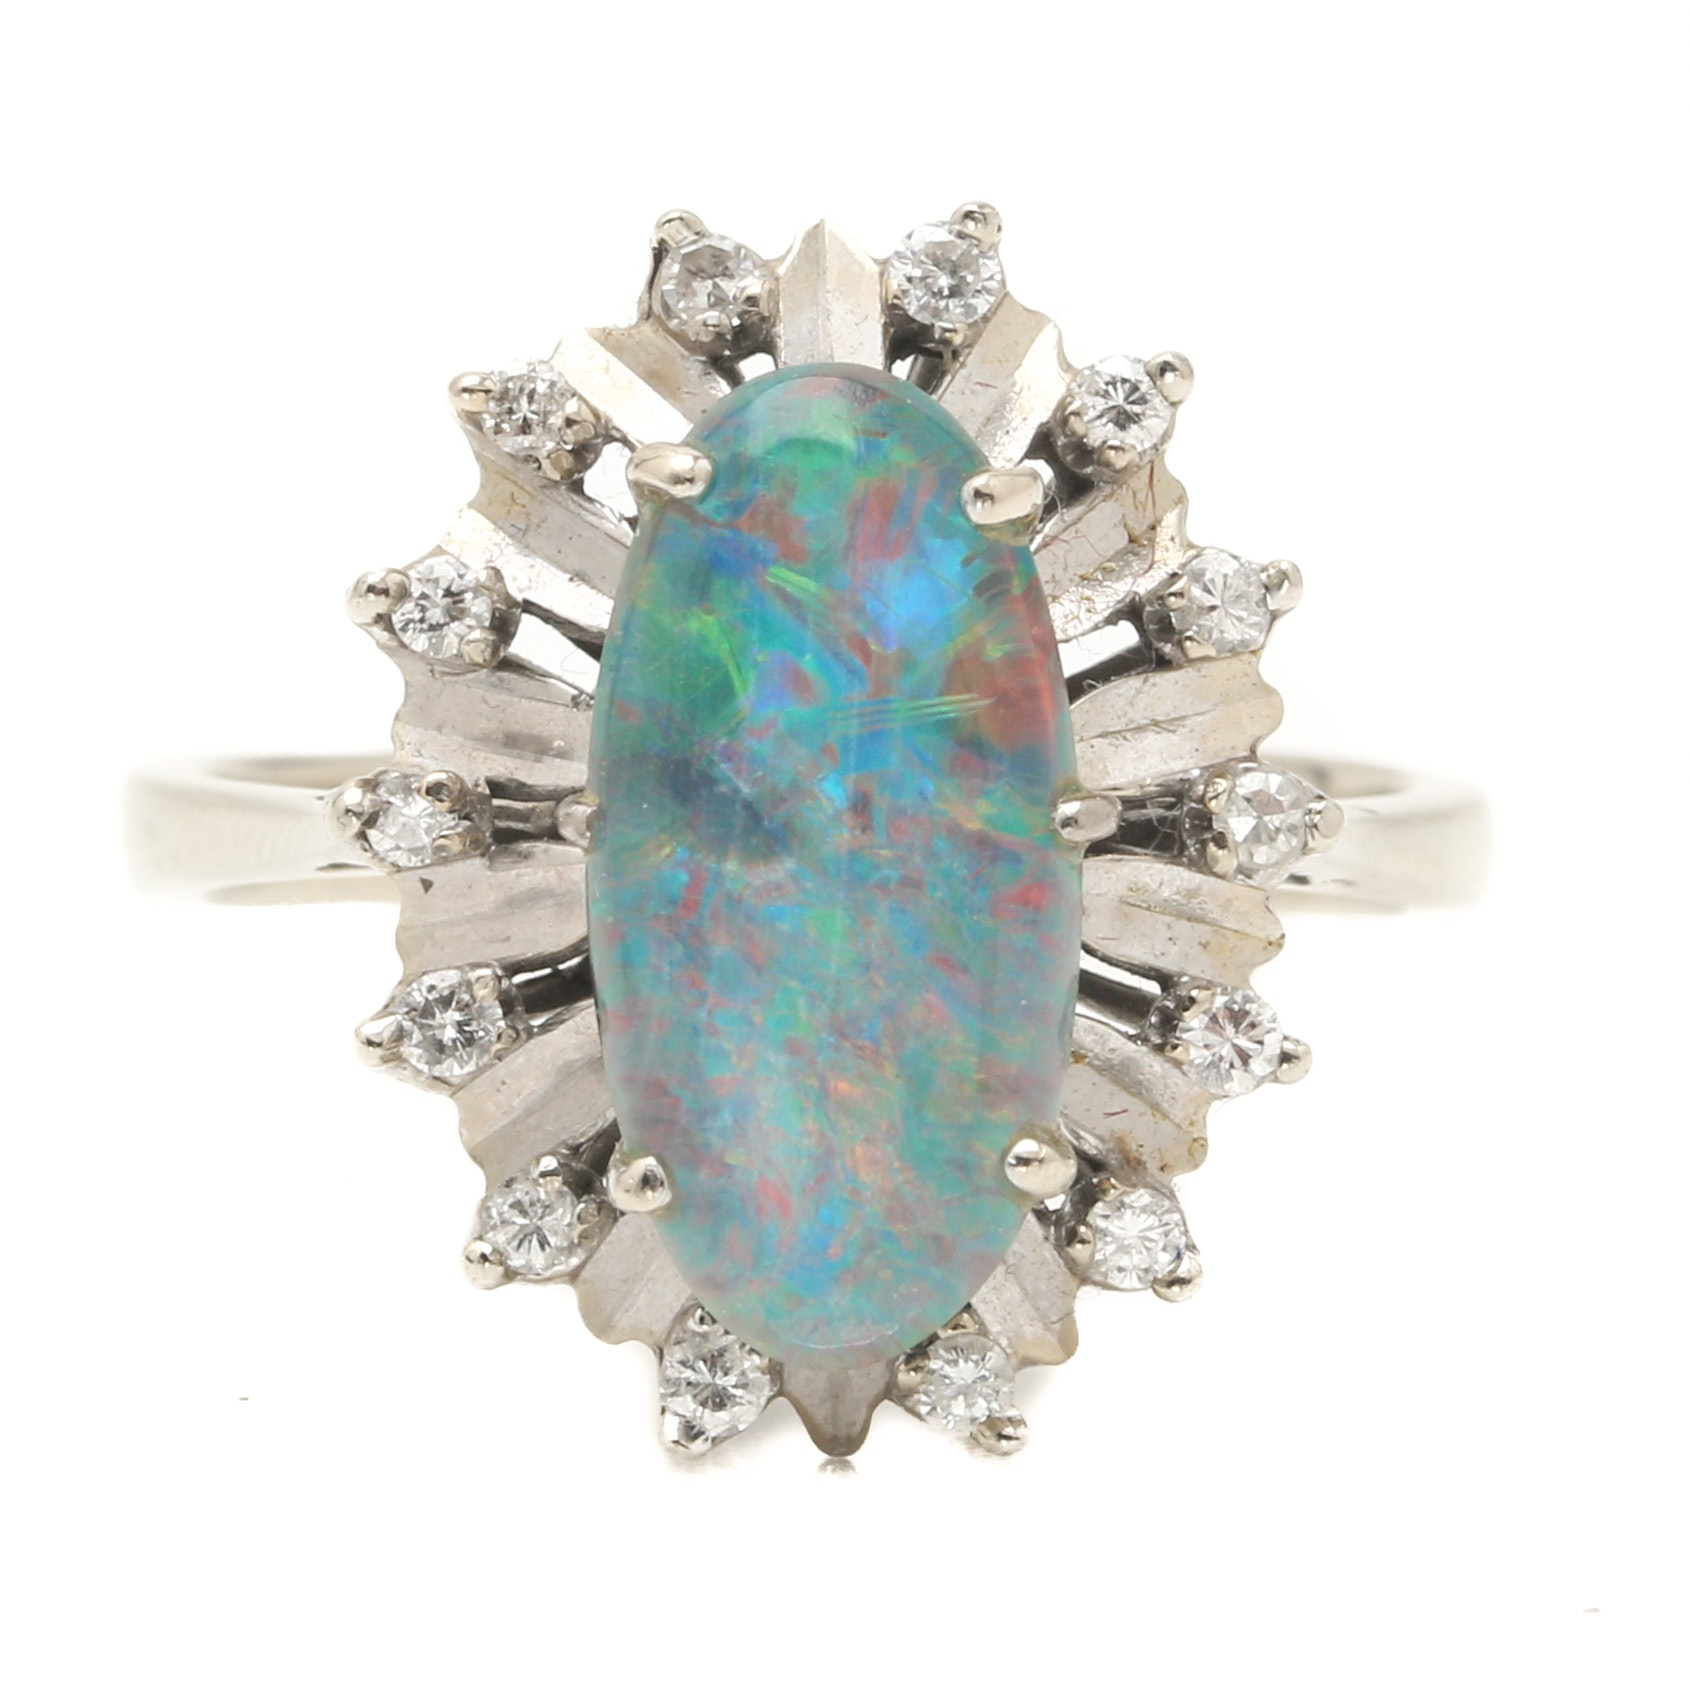 Circa 1950s 18K White Gold Opal Triplet and Diamond Ring